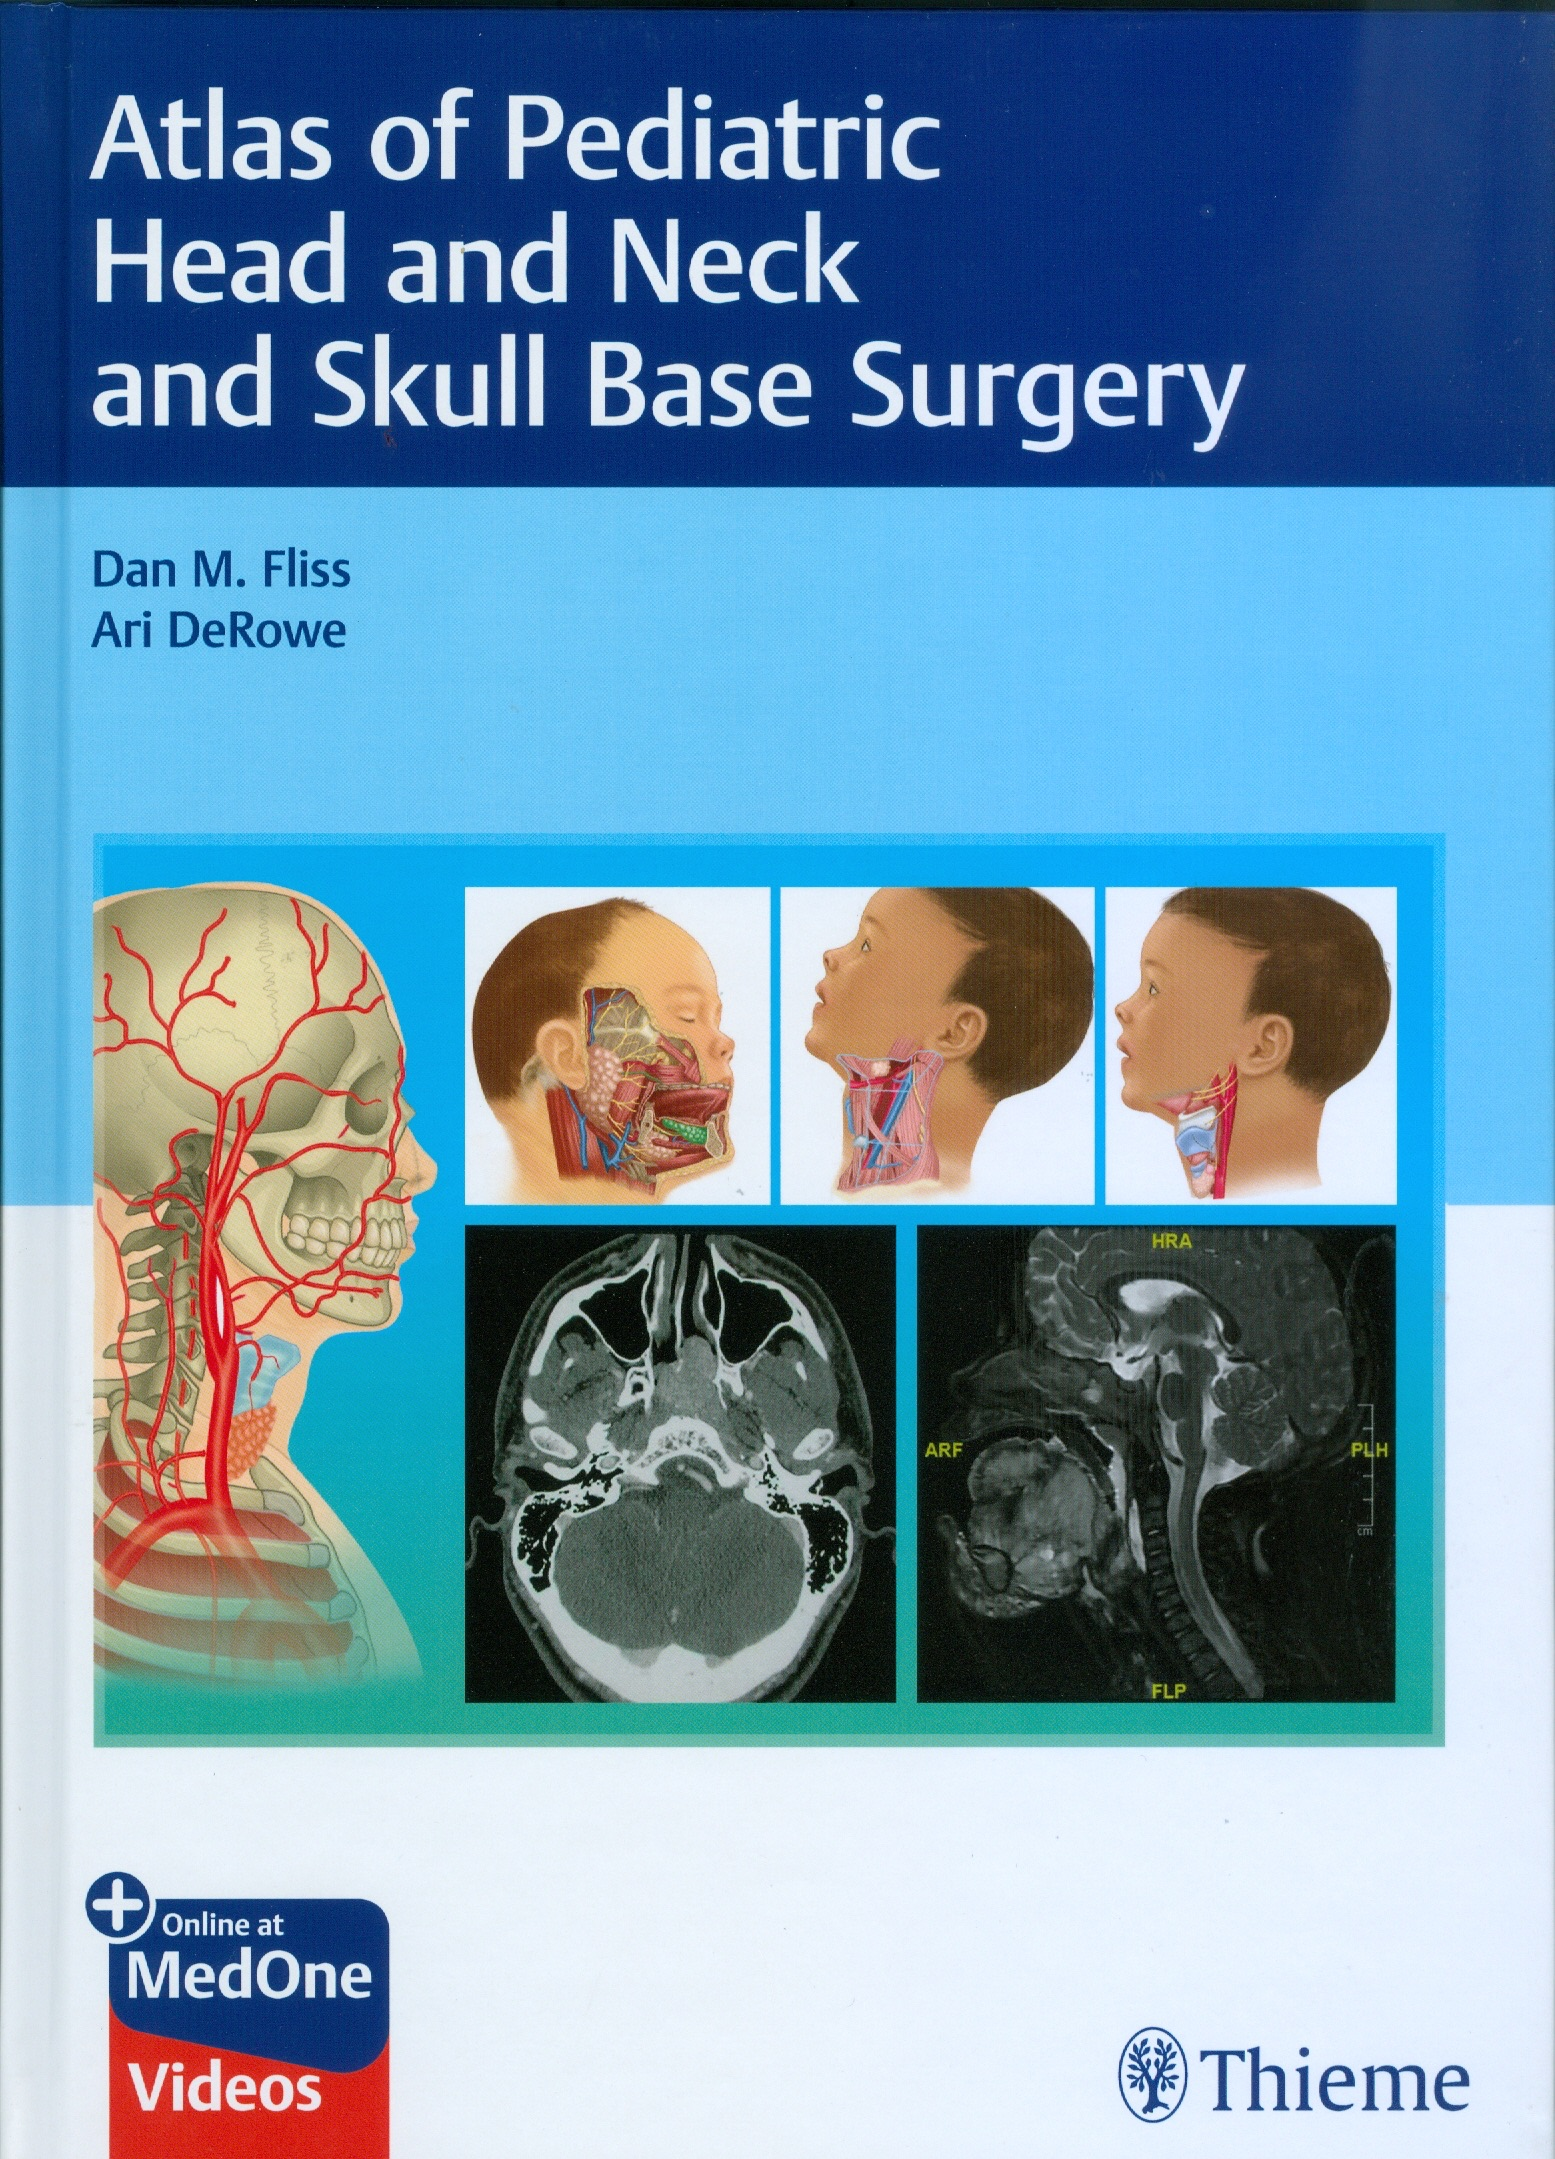 Atlas of Pediatric Head and Neck and Skull Base Surgery